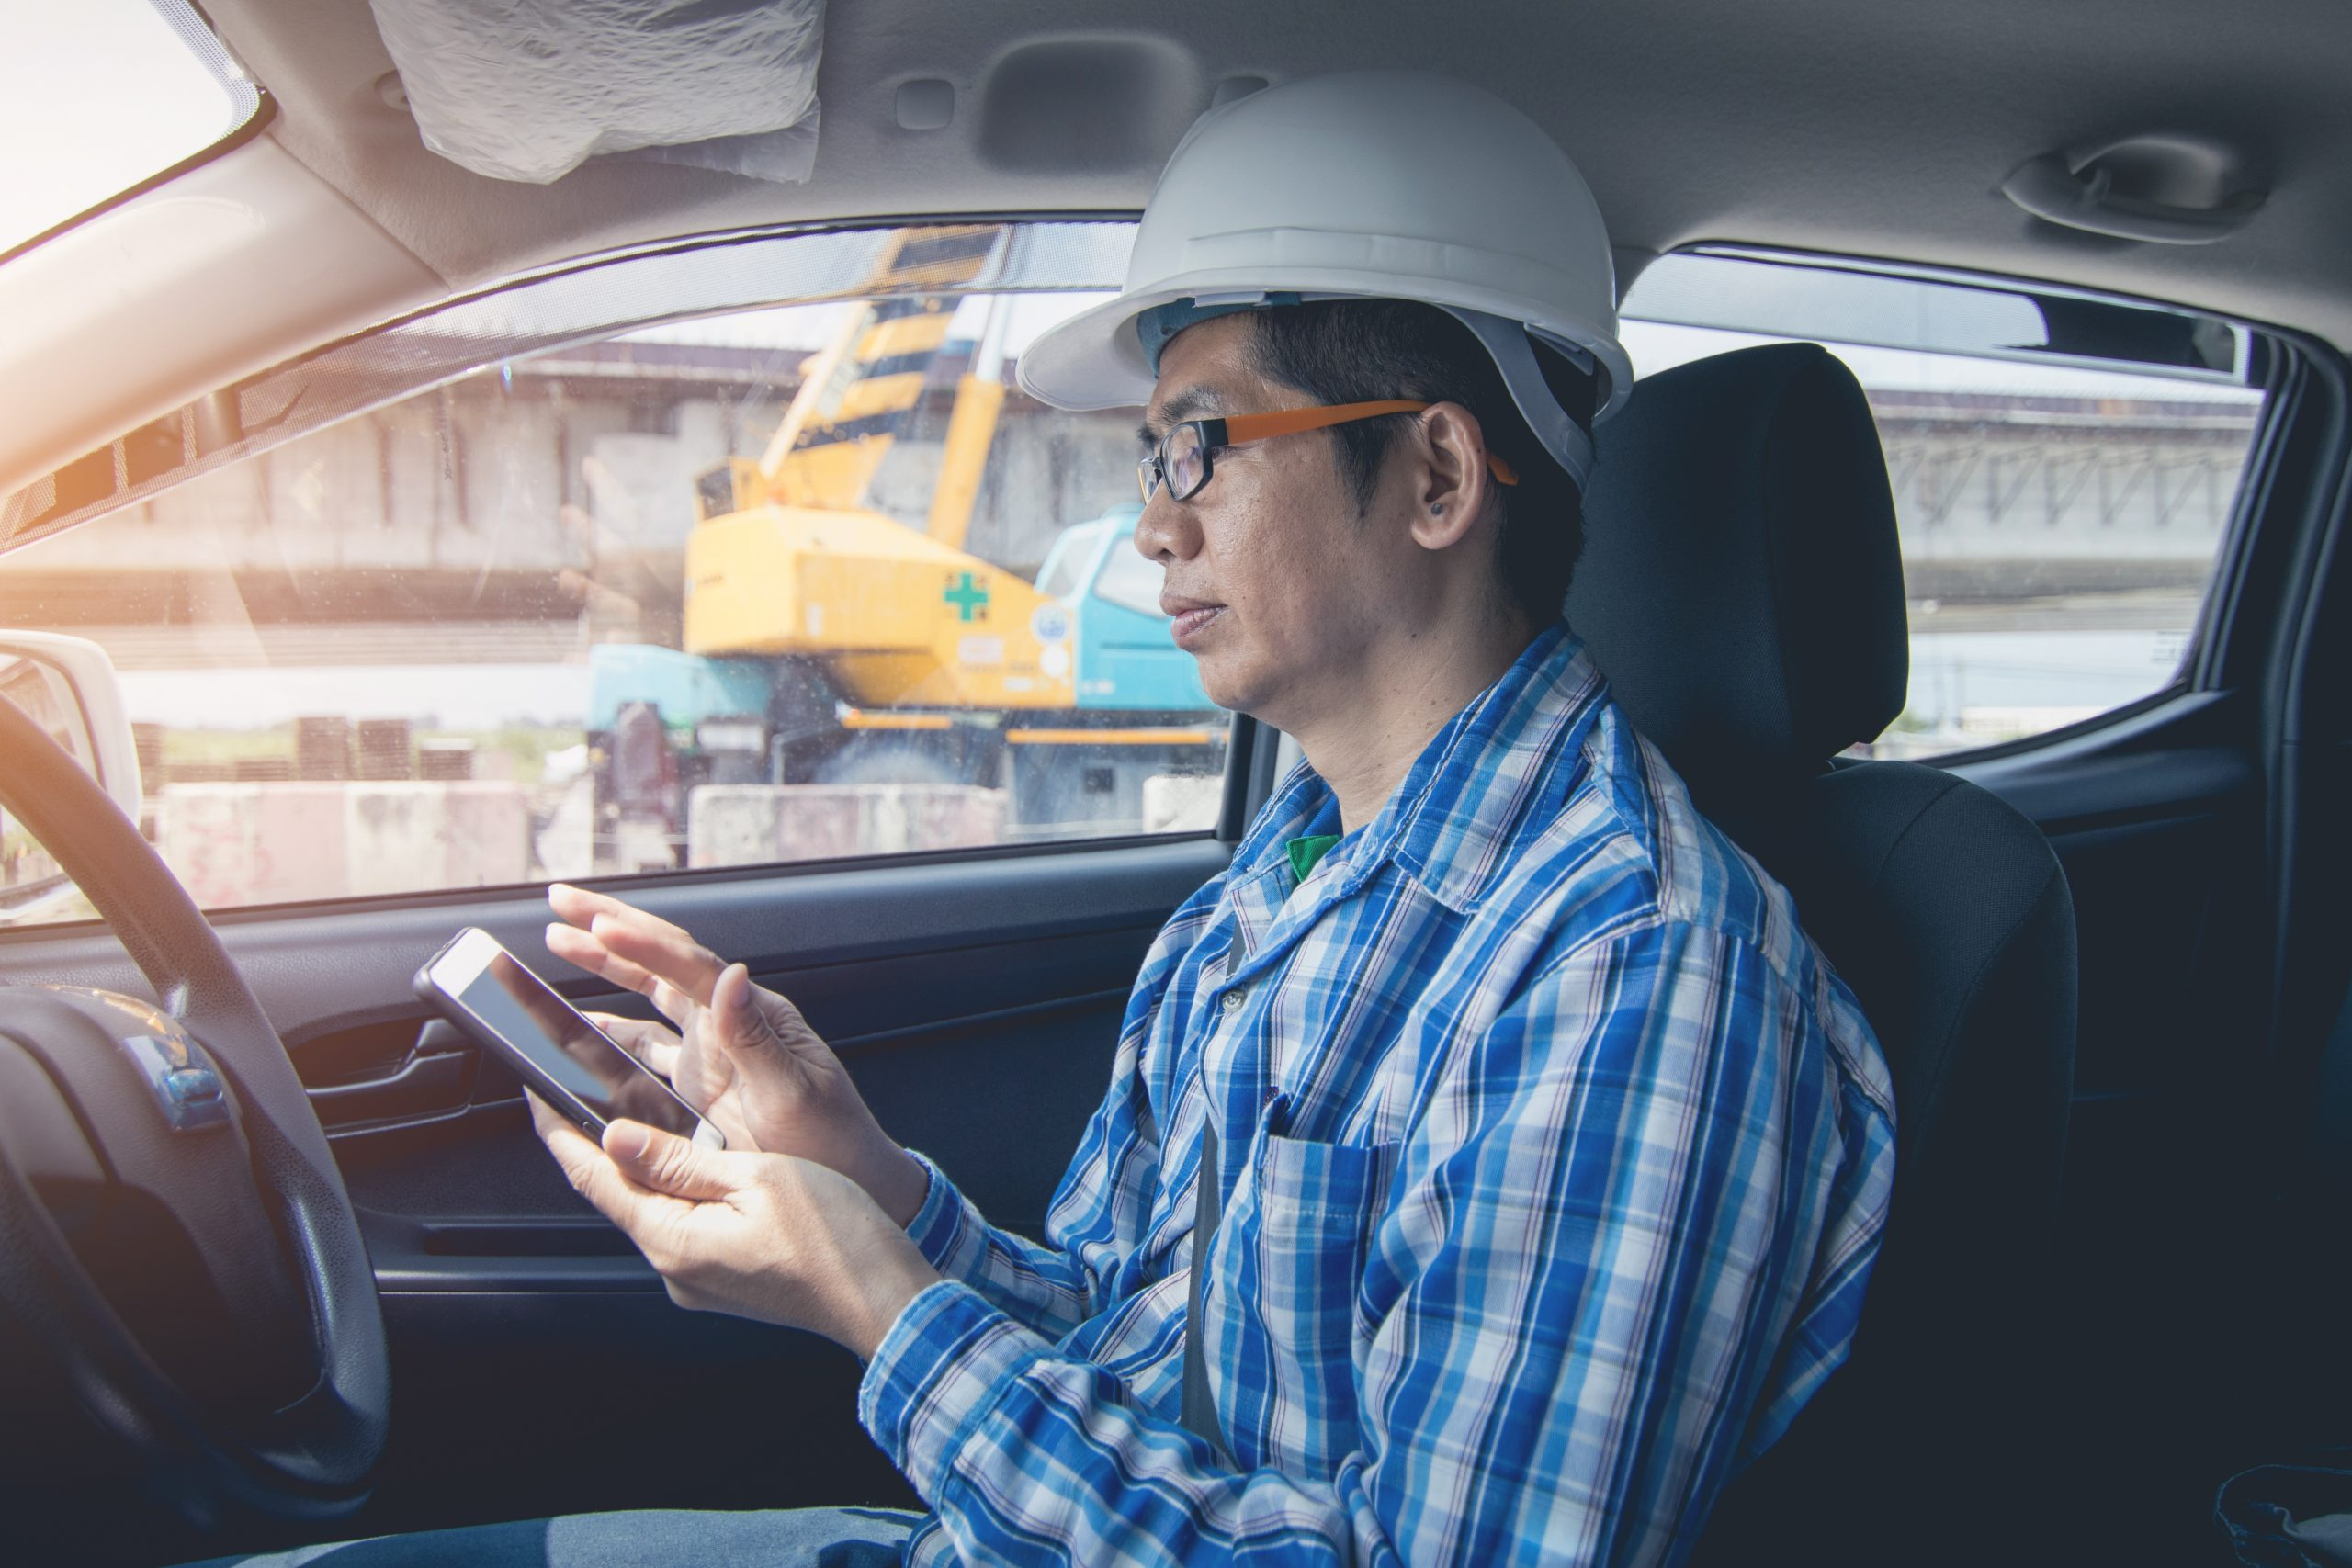 A field staff employee inspecting the optimized and planned routes on a mobile device while in a work vehicle